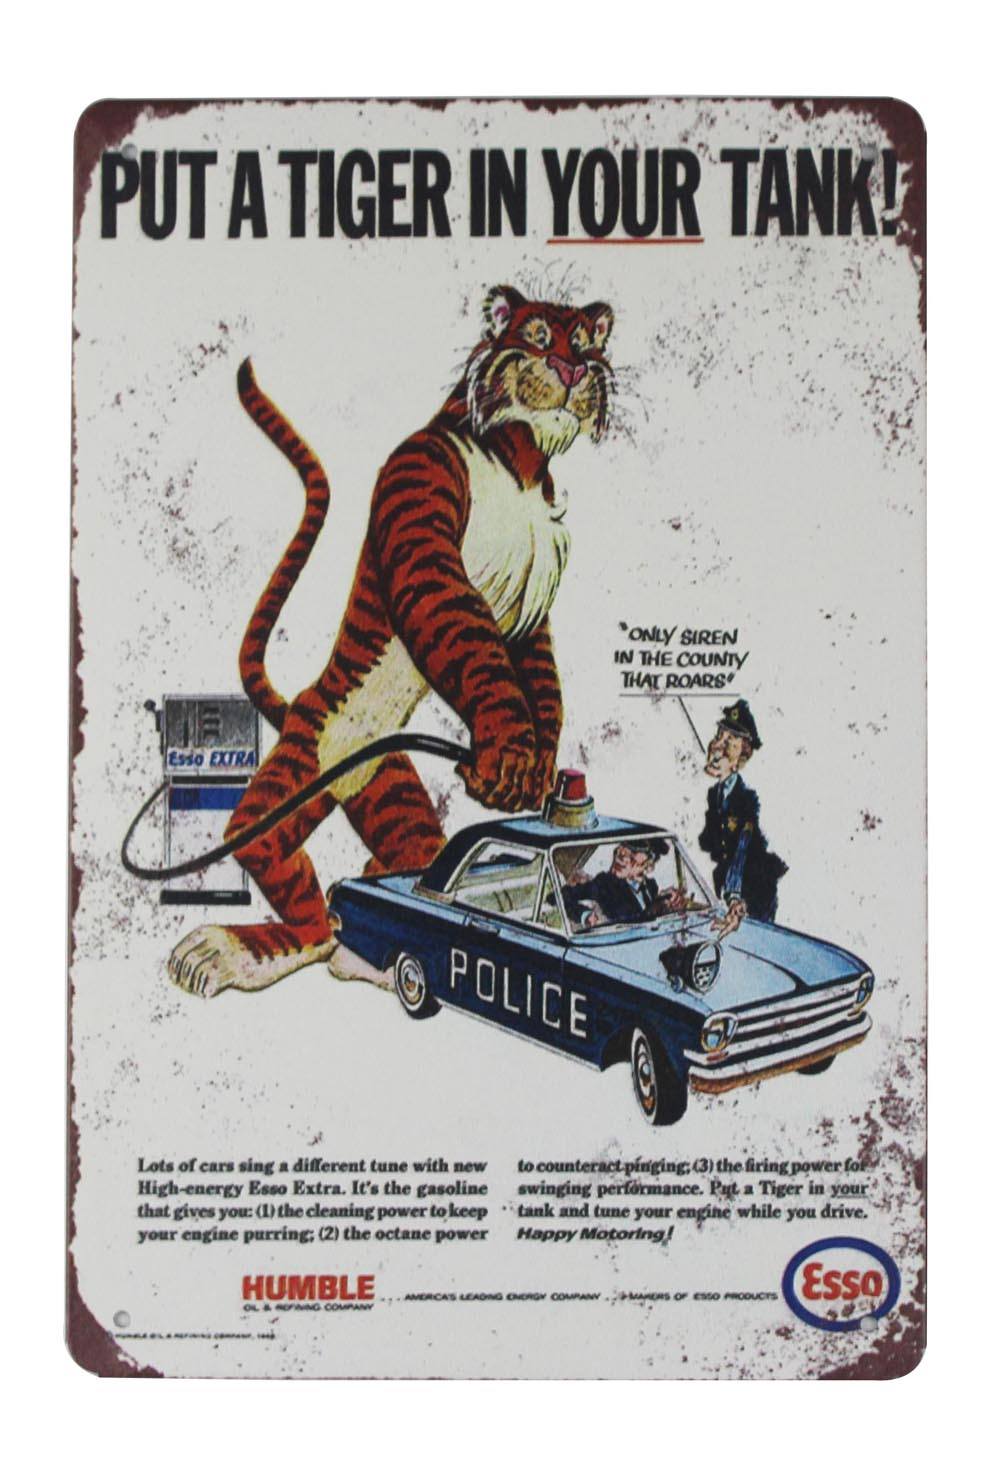 Esso put a tiger in your tank vintage style metal wall plaque sign